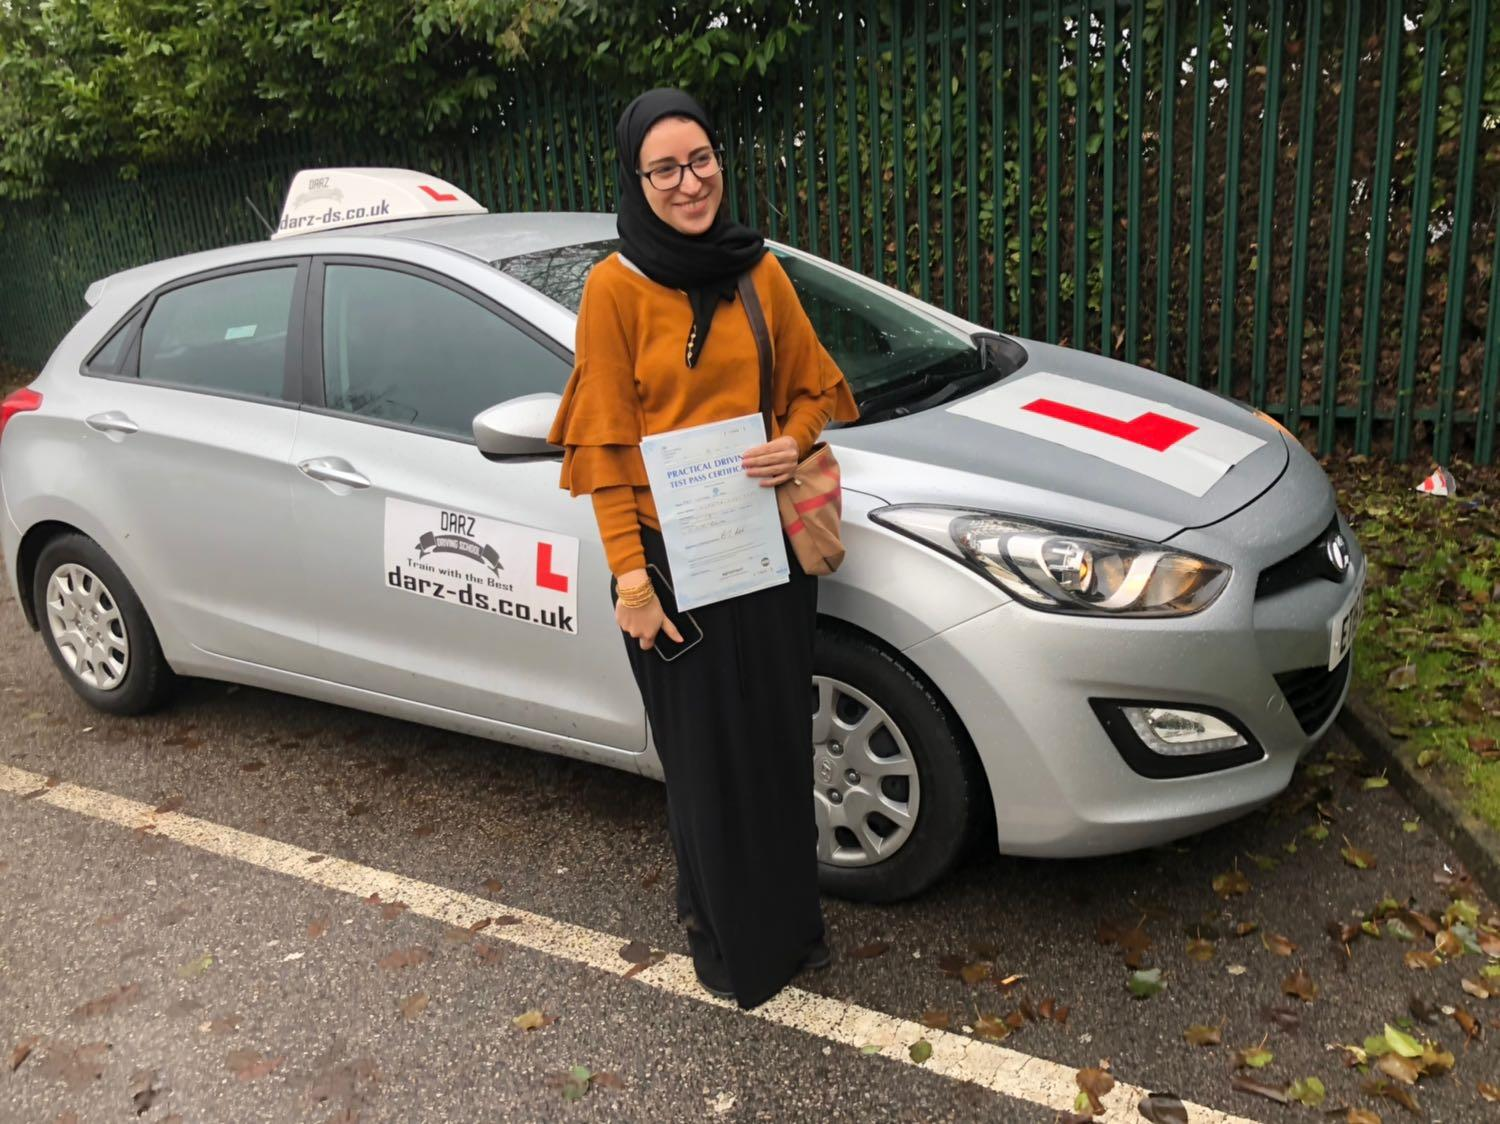 DRIVING LESSONS IN ROCHDALE